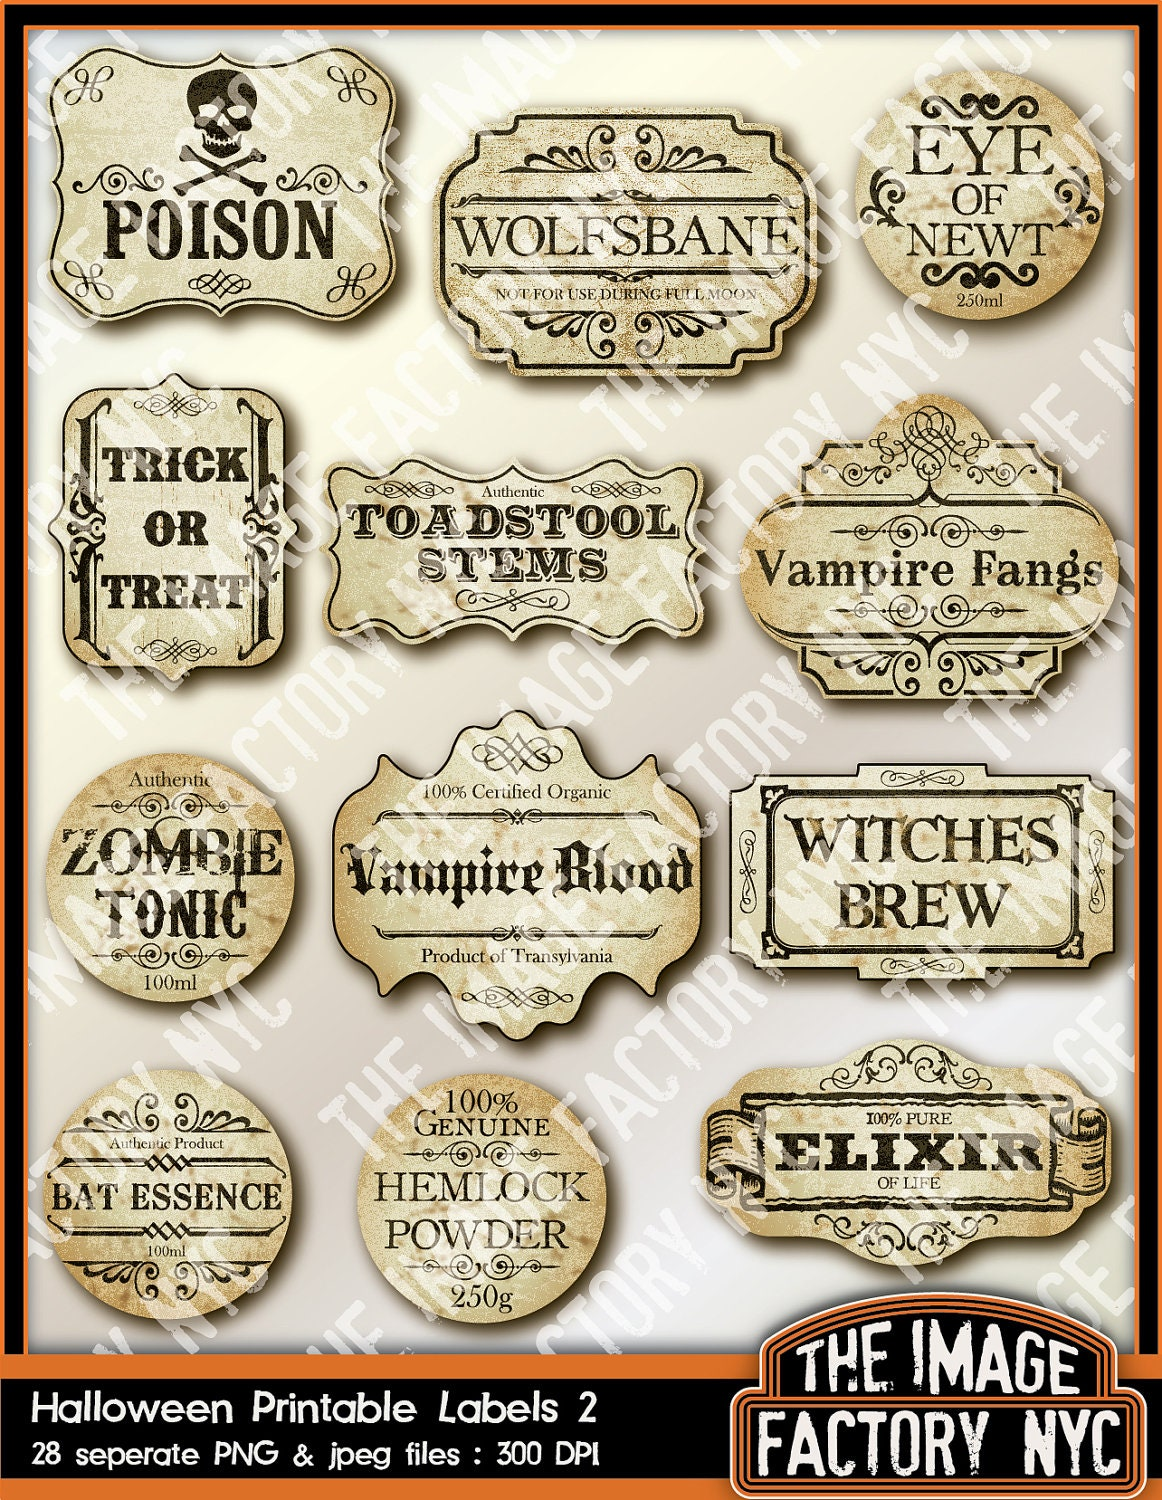 photograph regarding Free Printable Halloween Poison Bottle Labels identified as Halloween Labels Photos - Opposite Appear